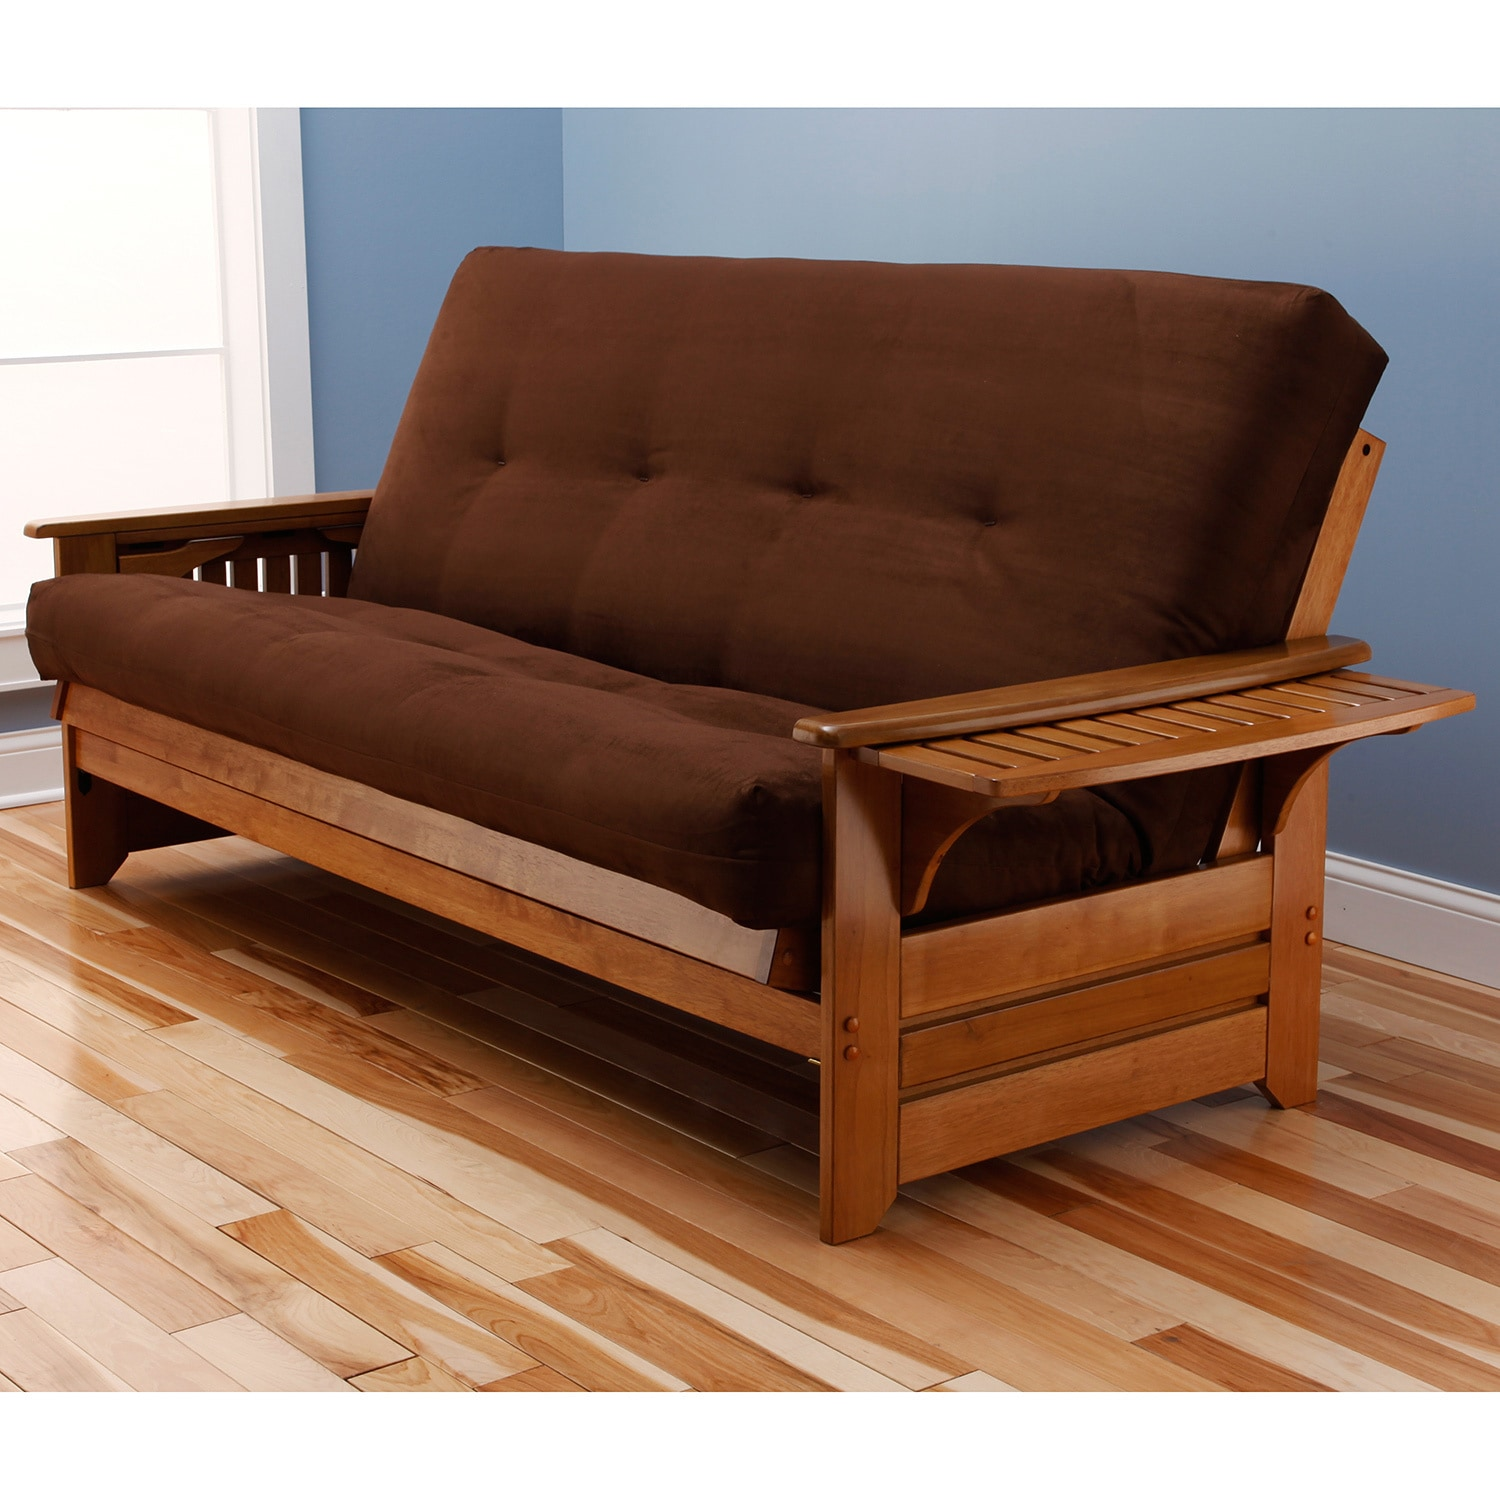 tri new futon full fold design frame www informative home double futons wood from